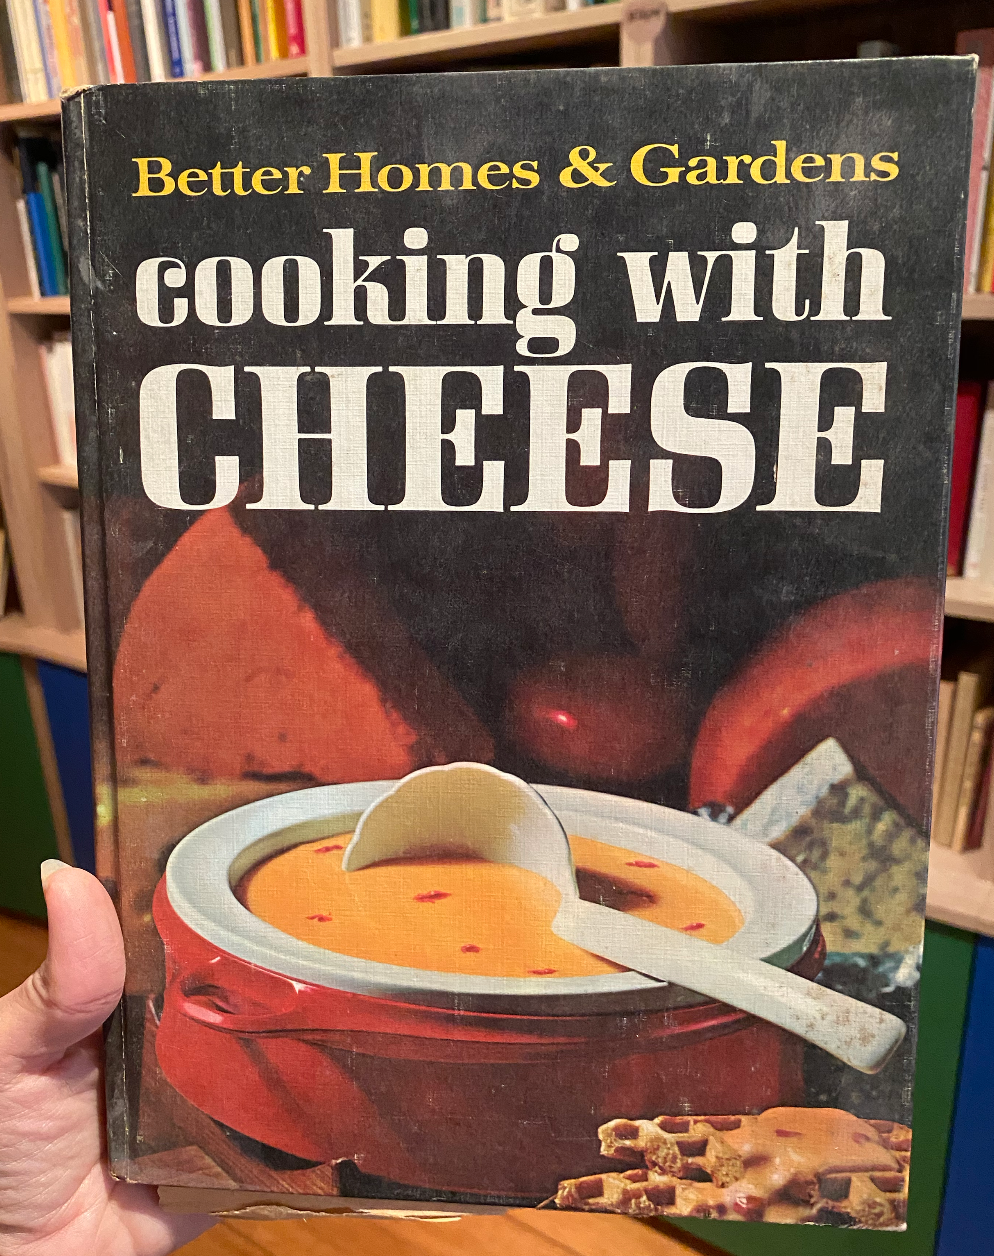 SOLD - Cooking with Cheese, Better Homes & Gardens with 1969 Clipping feat. Phil Albert (Cheese King)